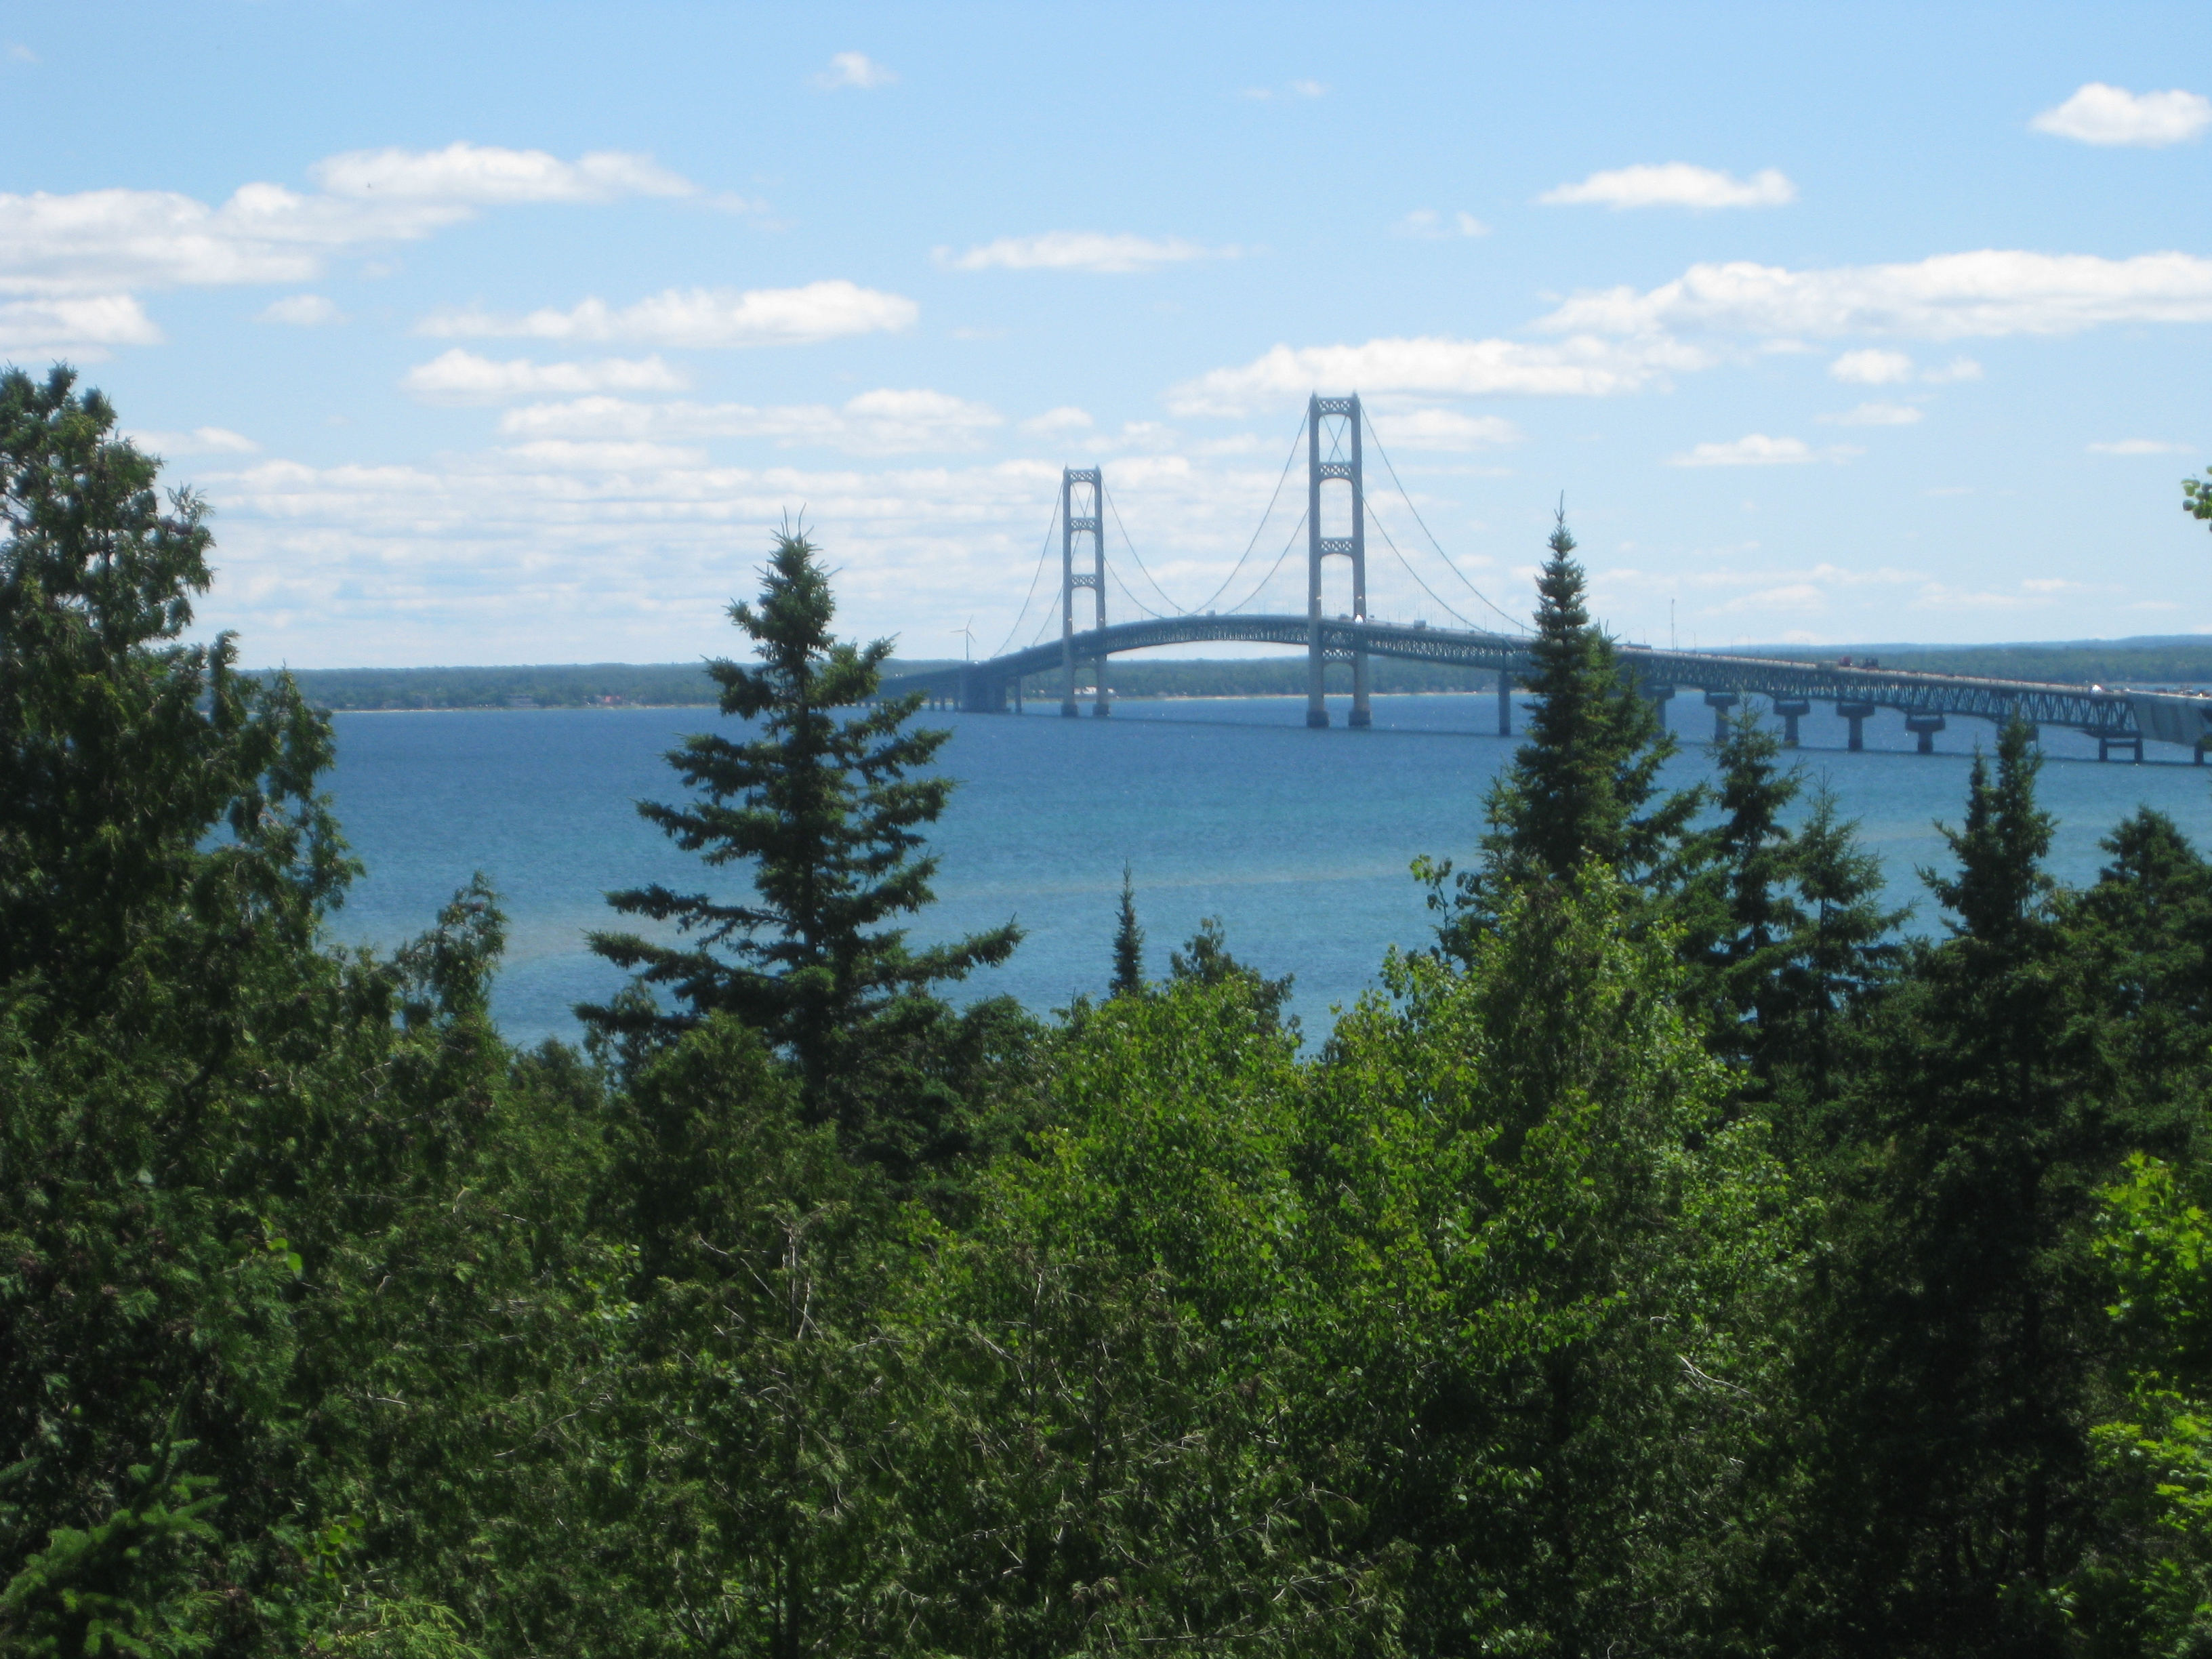 Mackinac Bridge view from the Straights State Campground